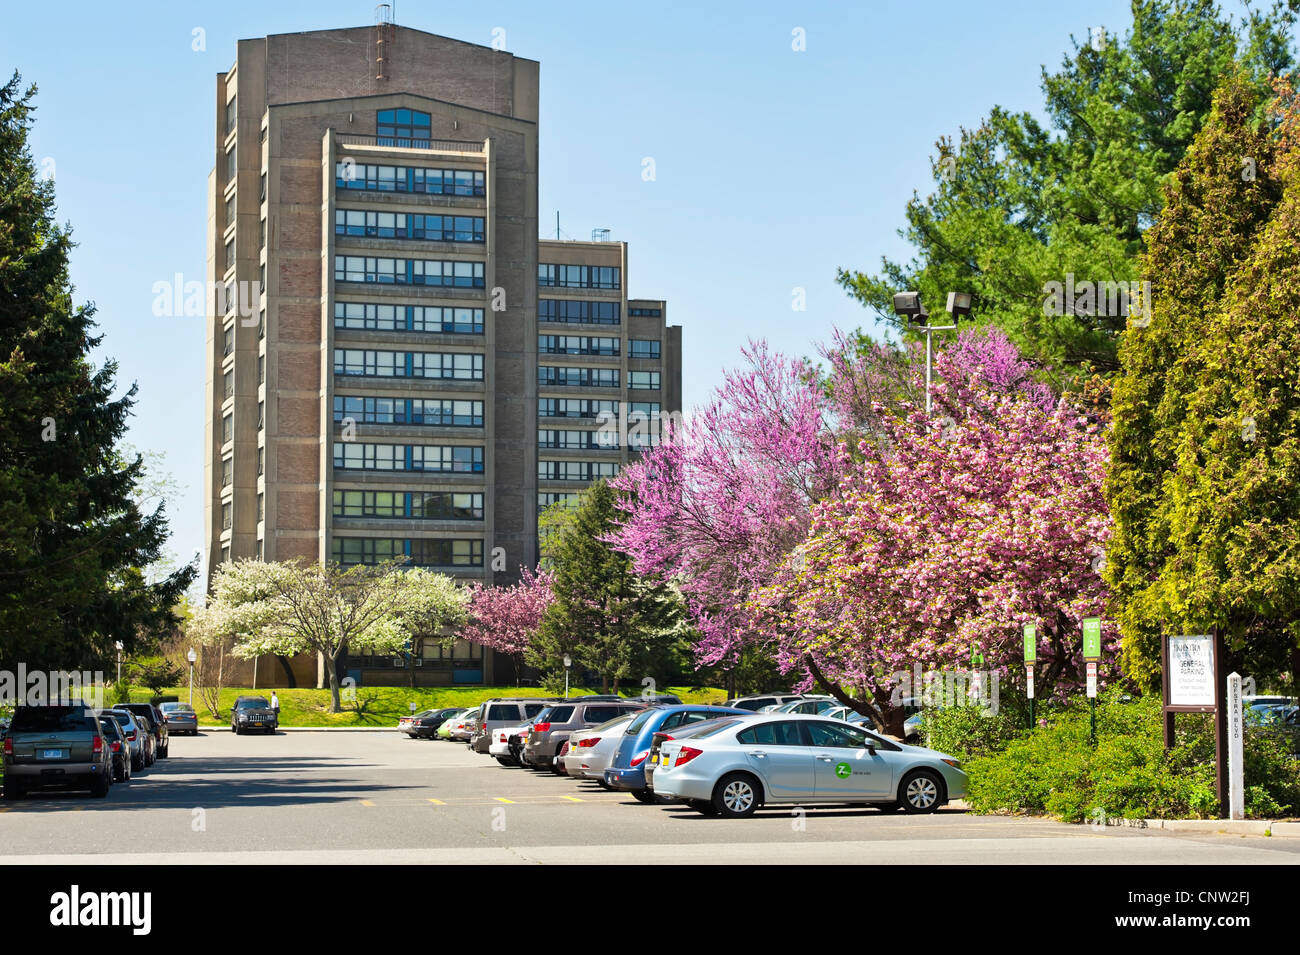 Hofstra University Campus General Parking Lot And Dormitory Building